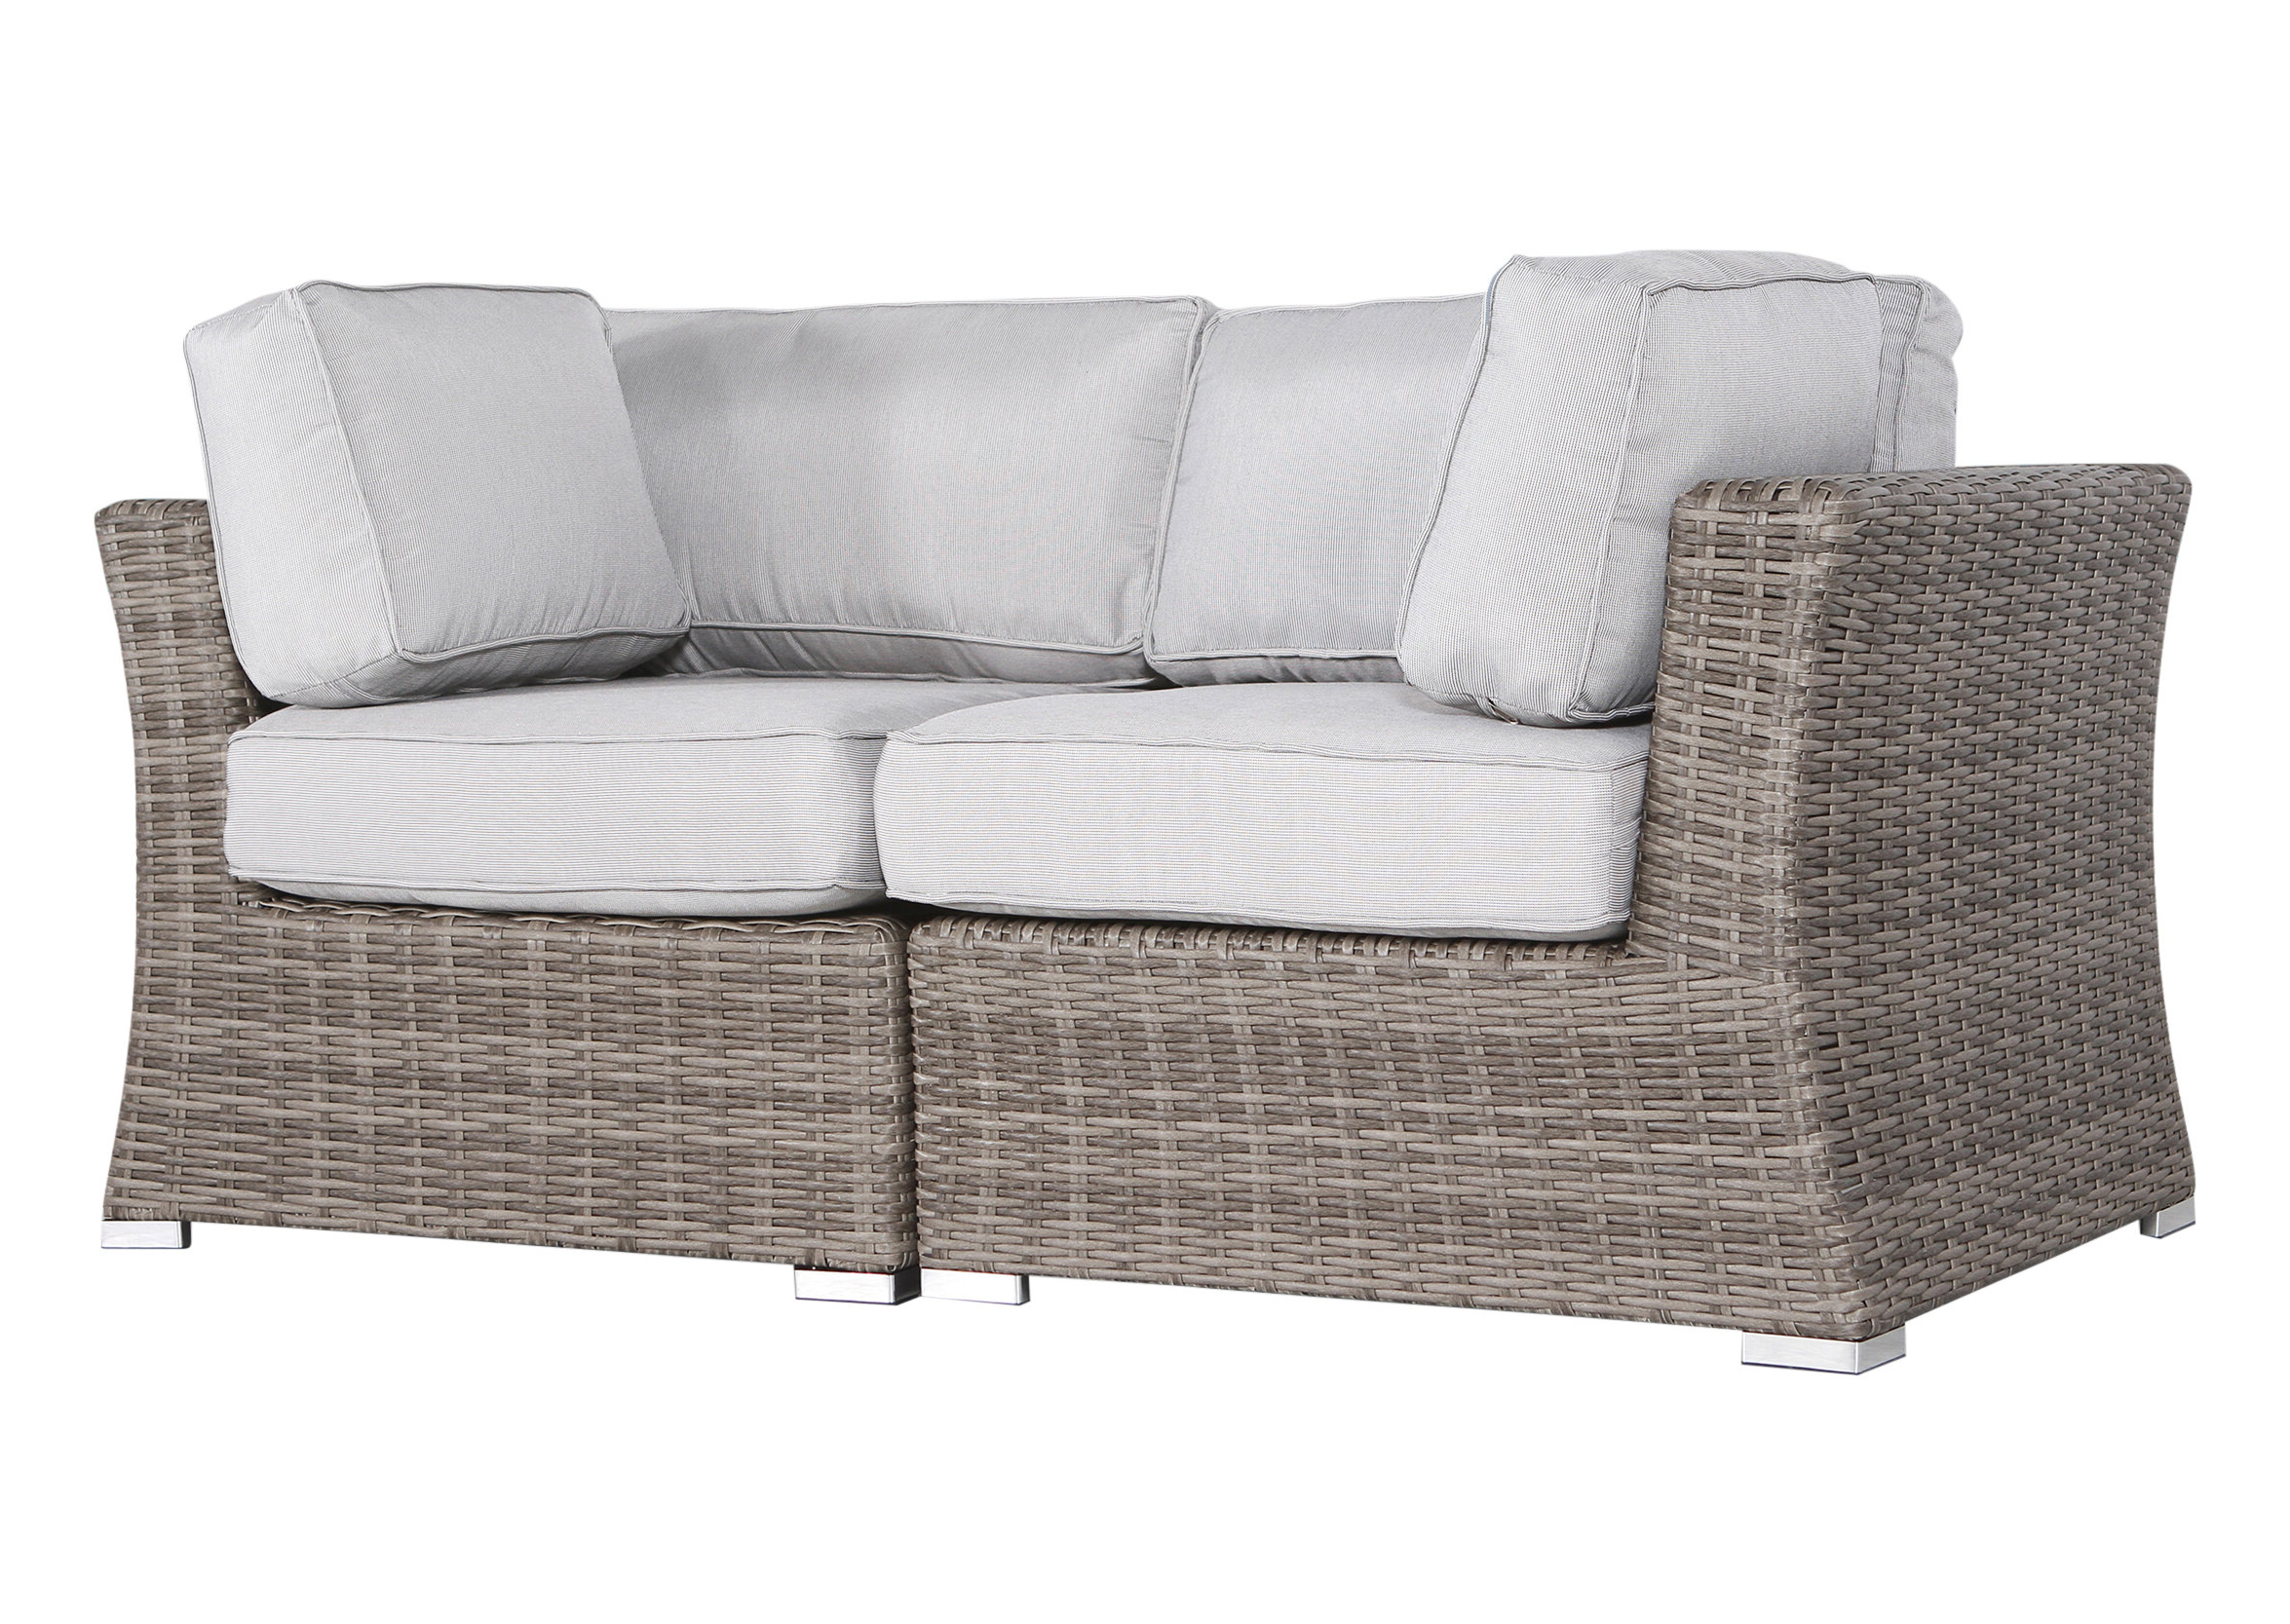 Huddleson Contemporary Loveseat With Cushion Inside Well Liked Avadi Outdoor Sofas & Ottomans 3 Piece Set (Gallery 15 of 25)